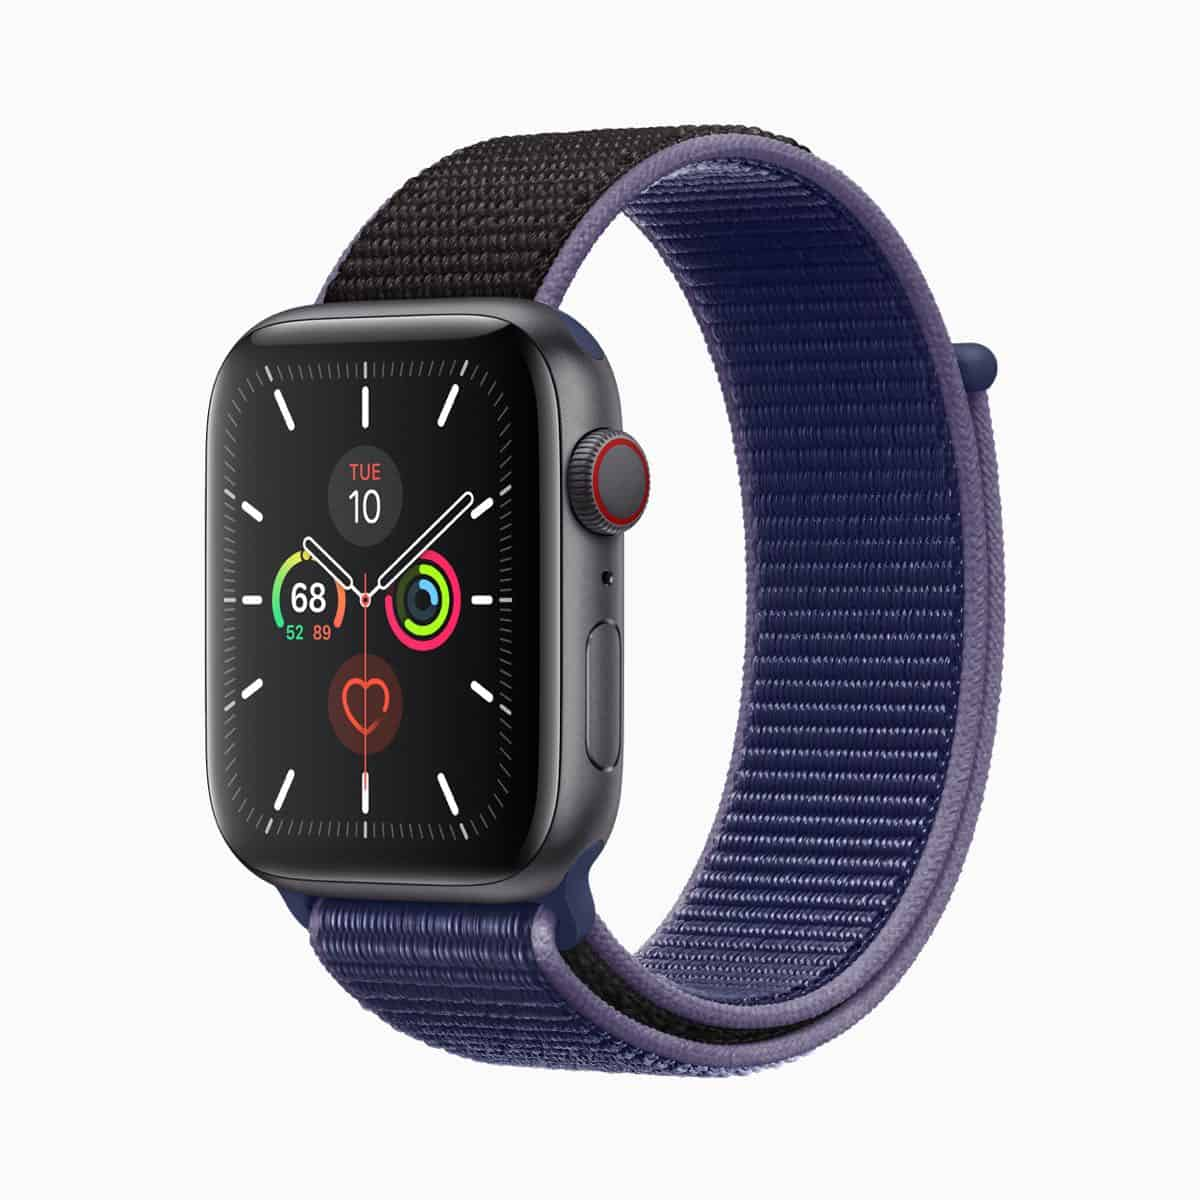 Apple watch series 5 midnight blue band space gray aluminum case 091019